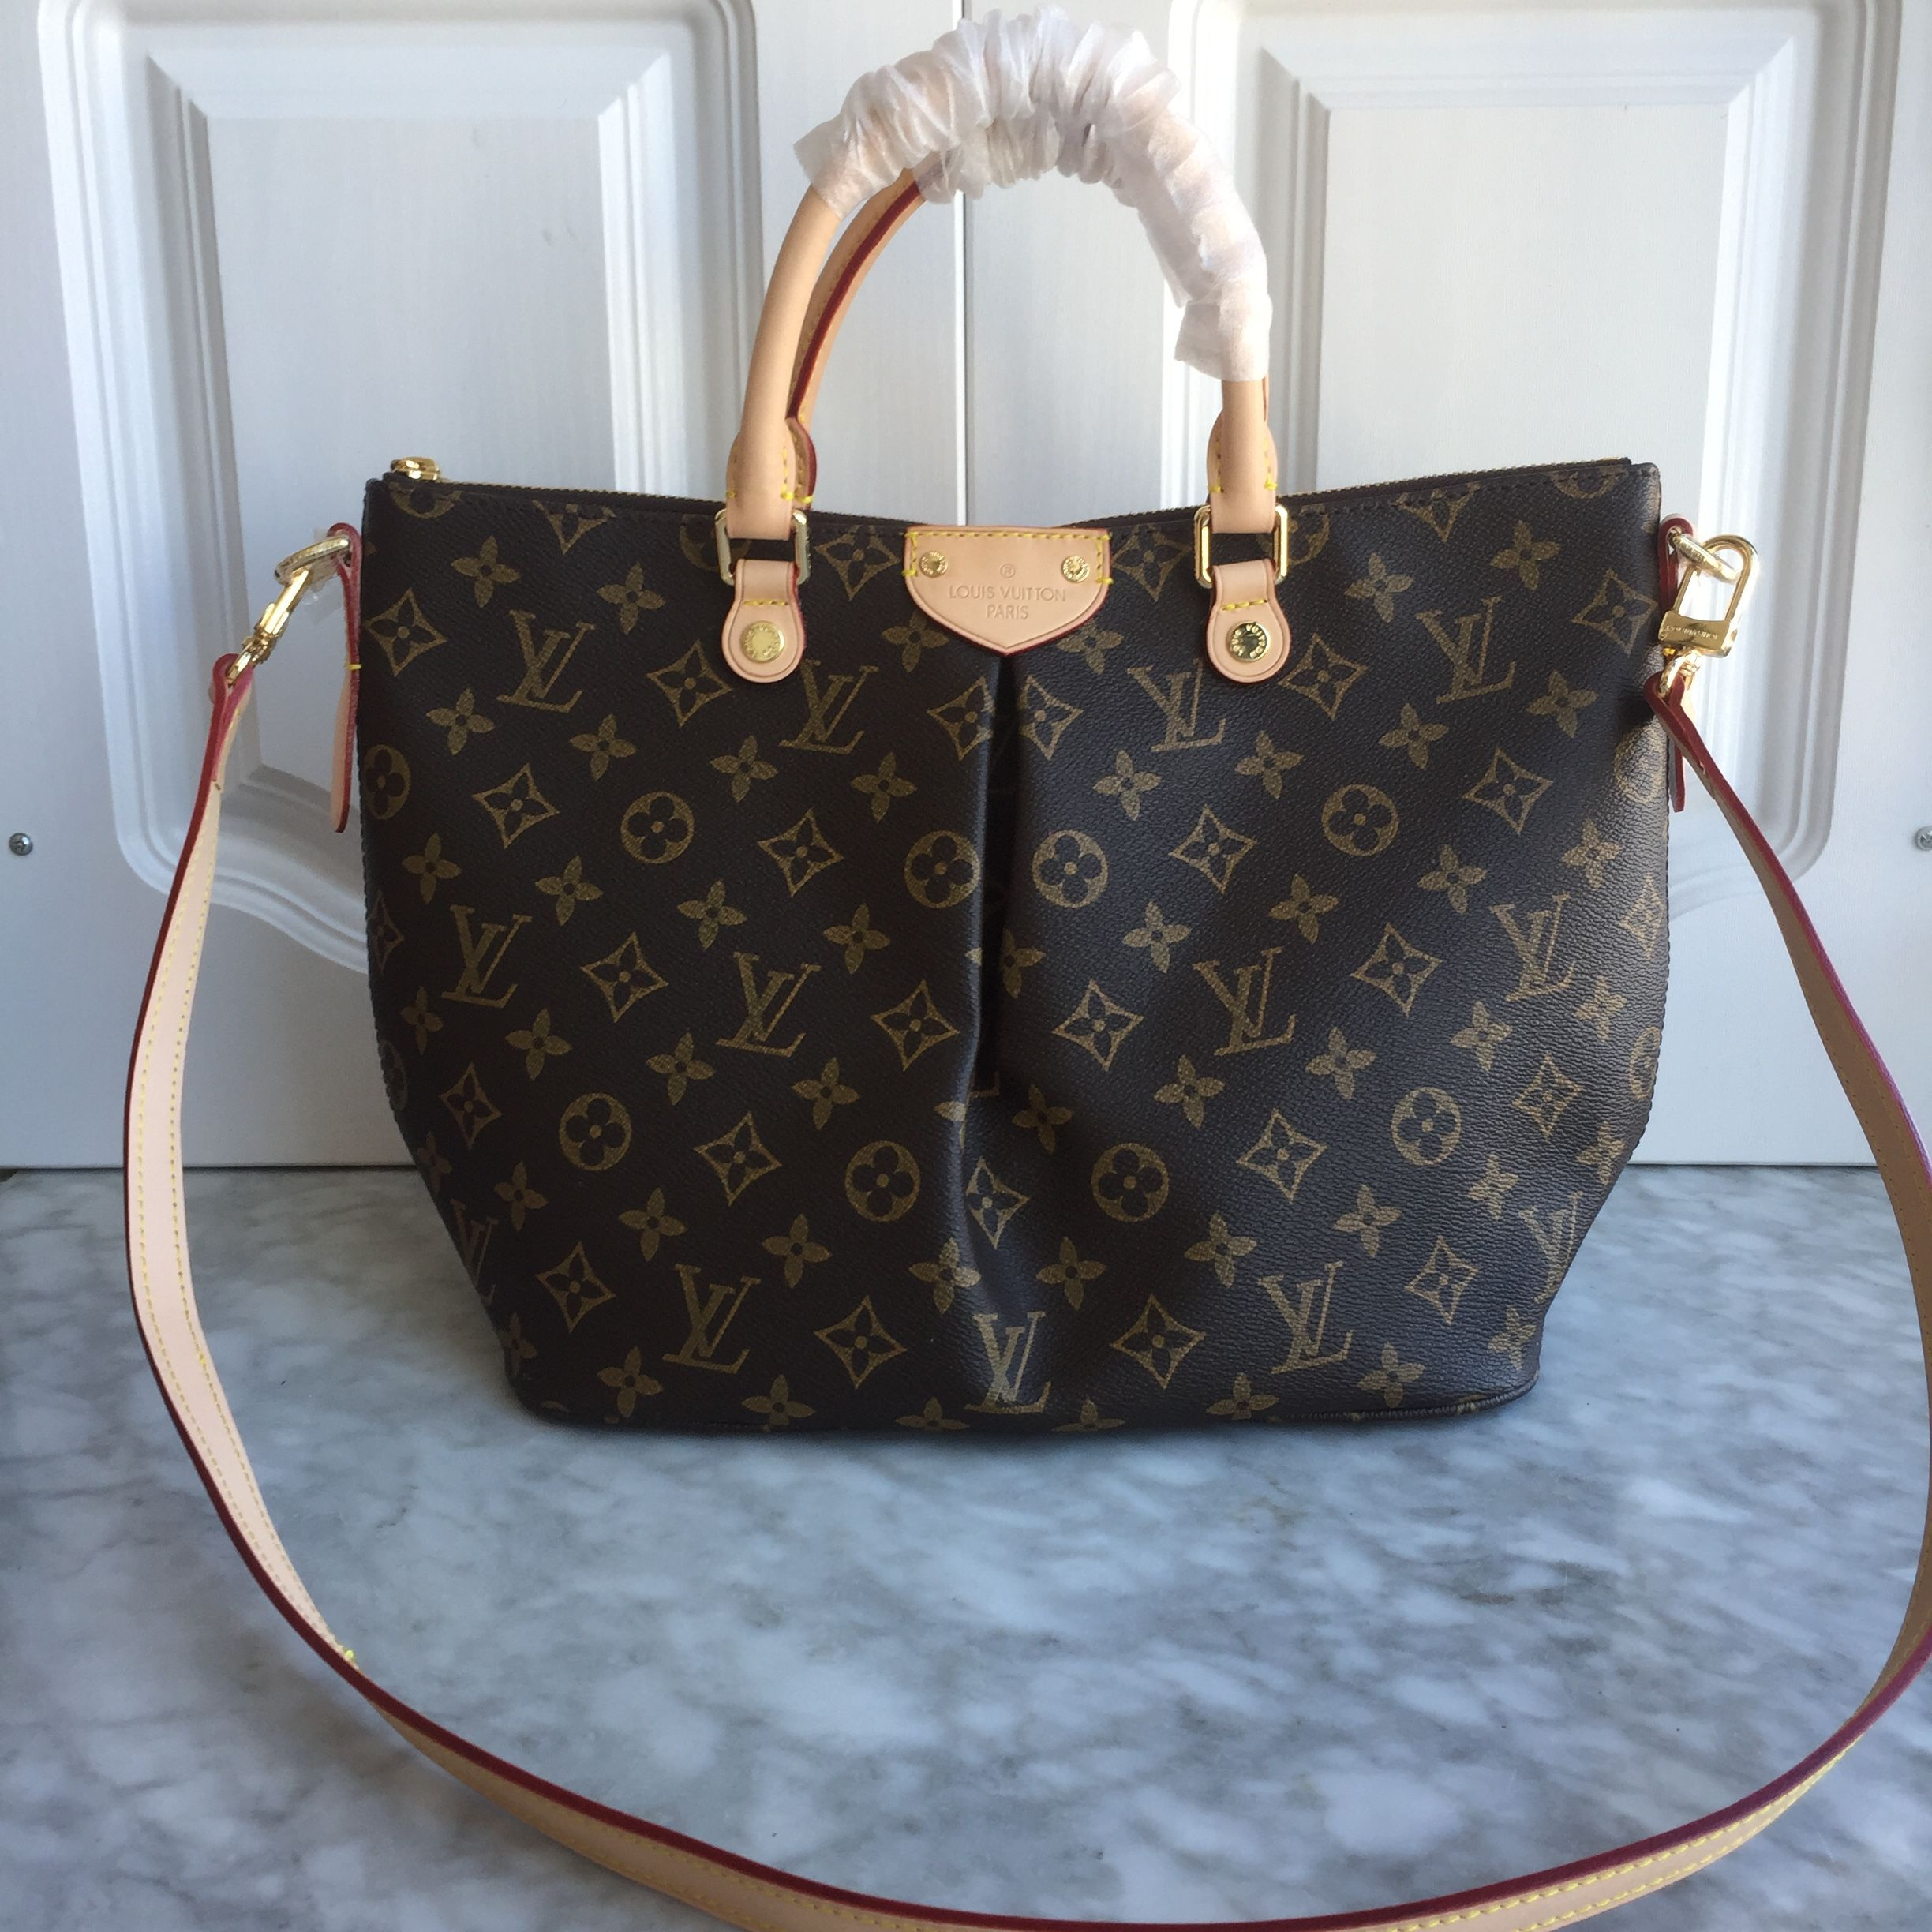 4f1e05023baca Louis Vuitton lv Siena tote bag monogram leather